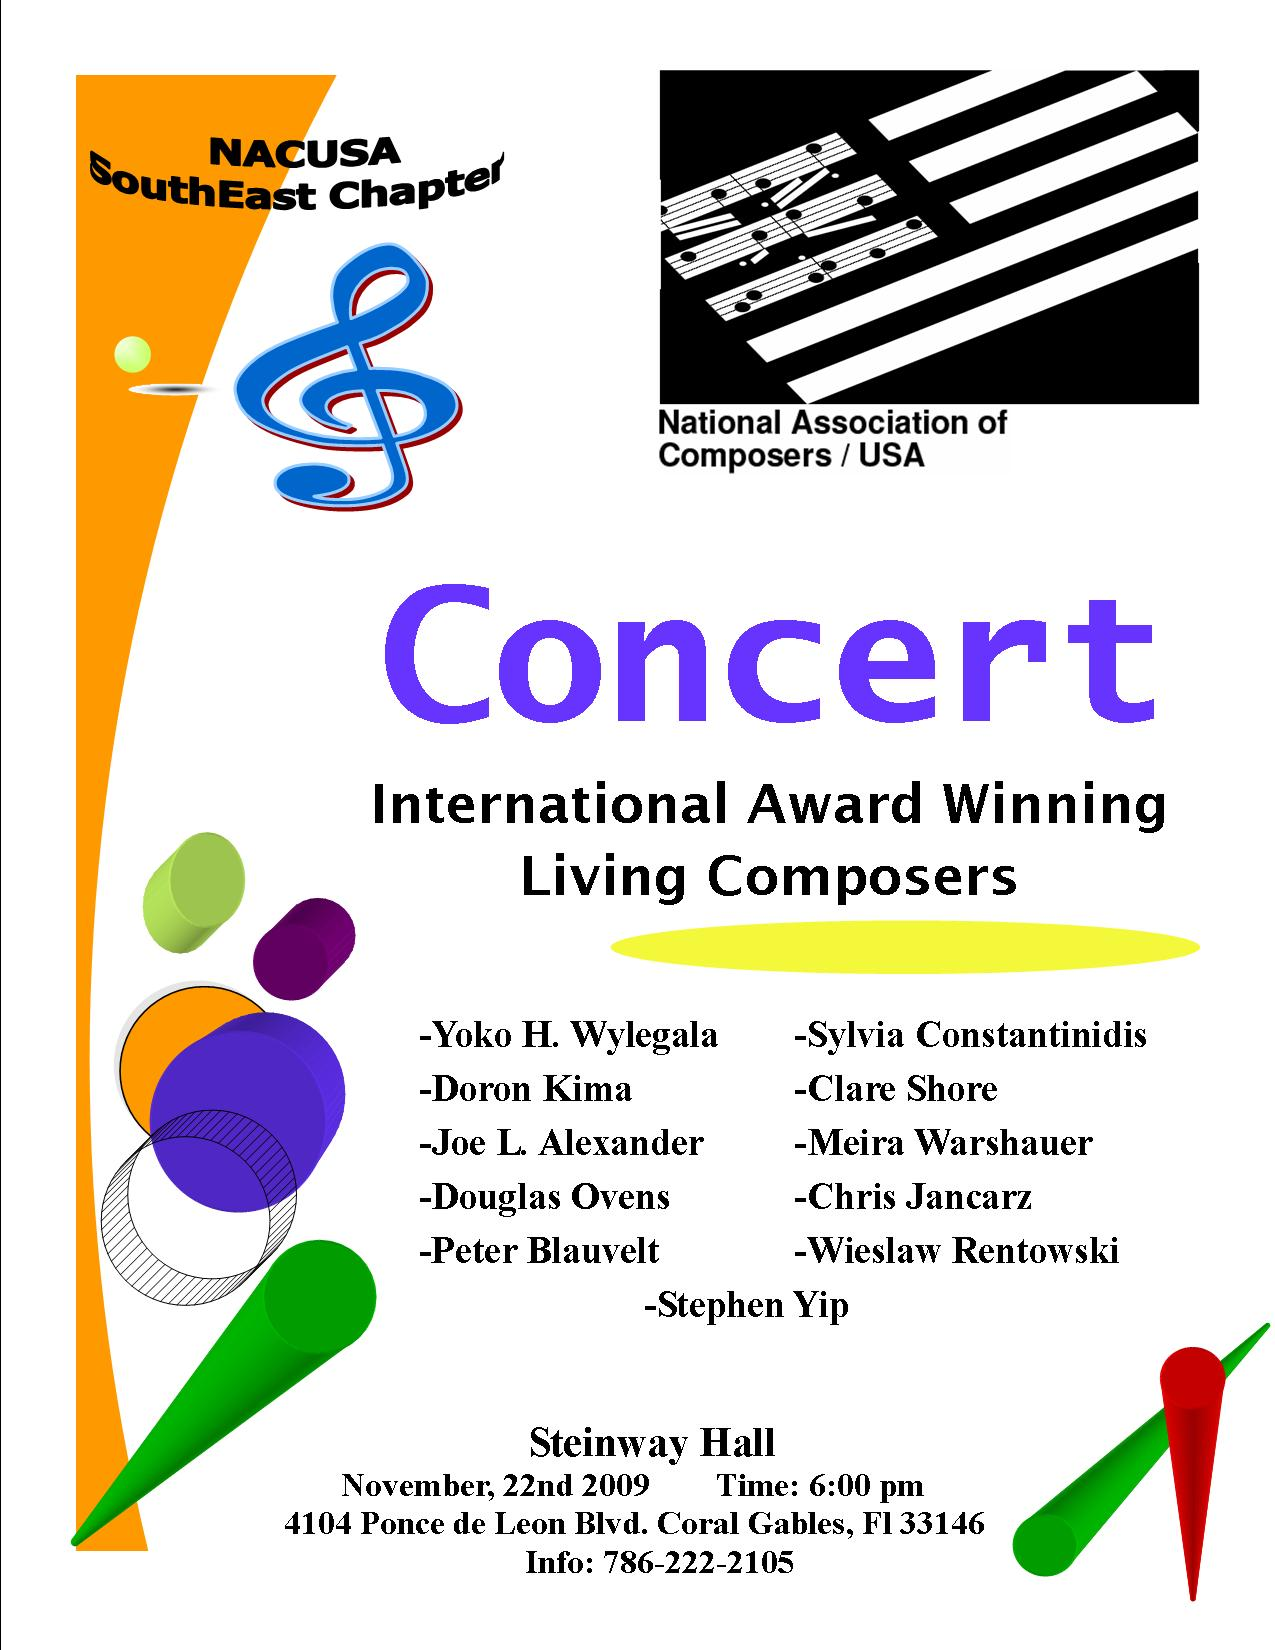 NACUSA Winter Concert Flyer.jpg?13316018